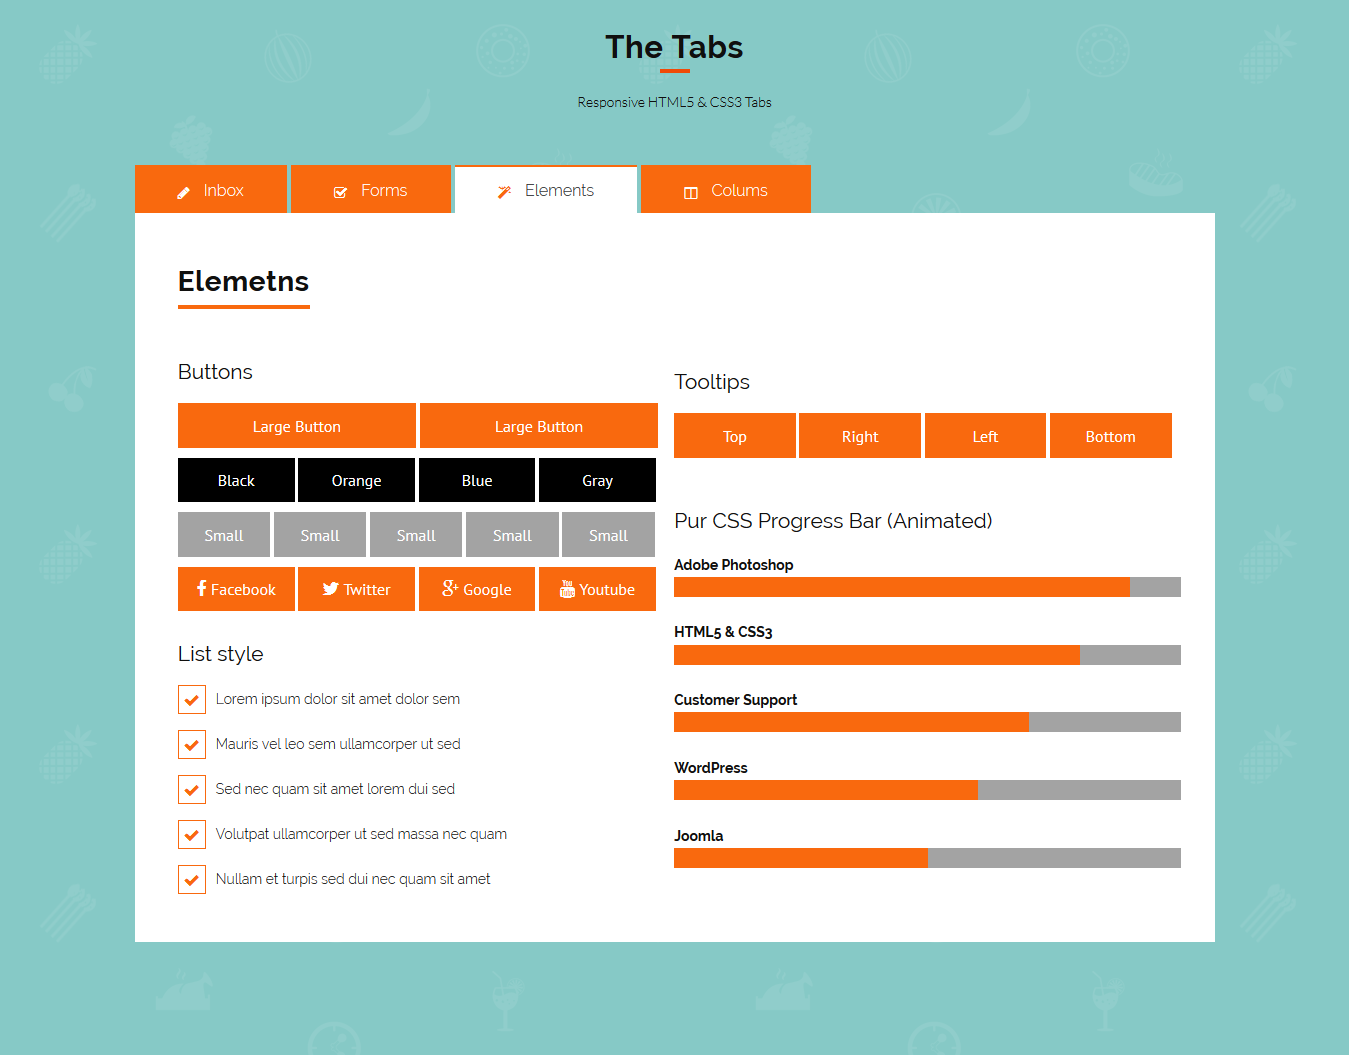 The Tabs - Responsive HTML5 & CSS3 Tabs